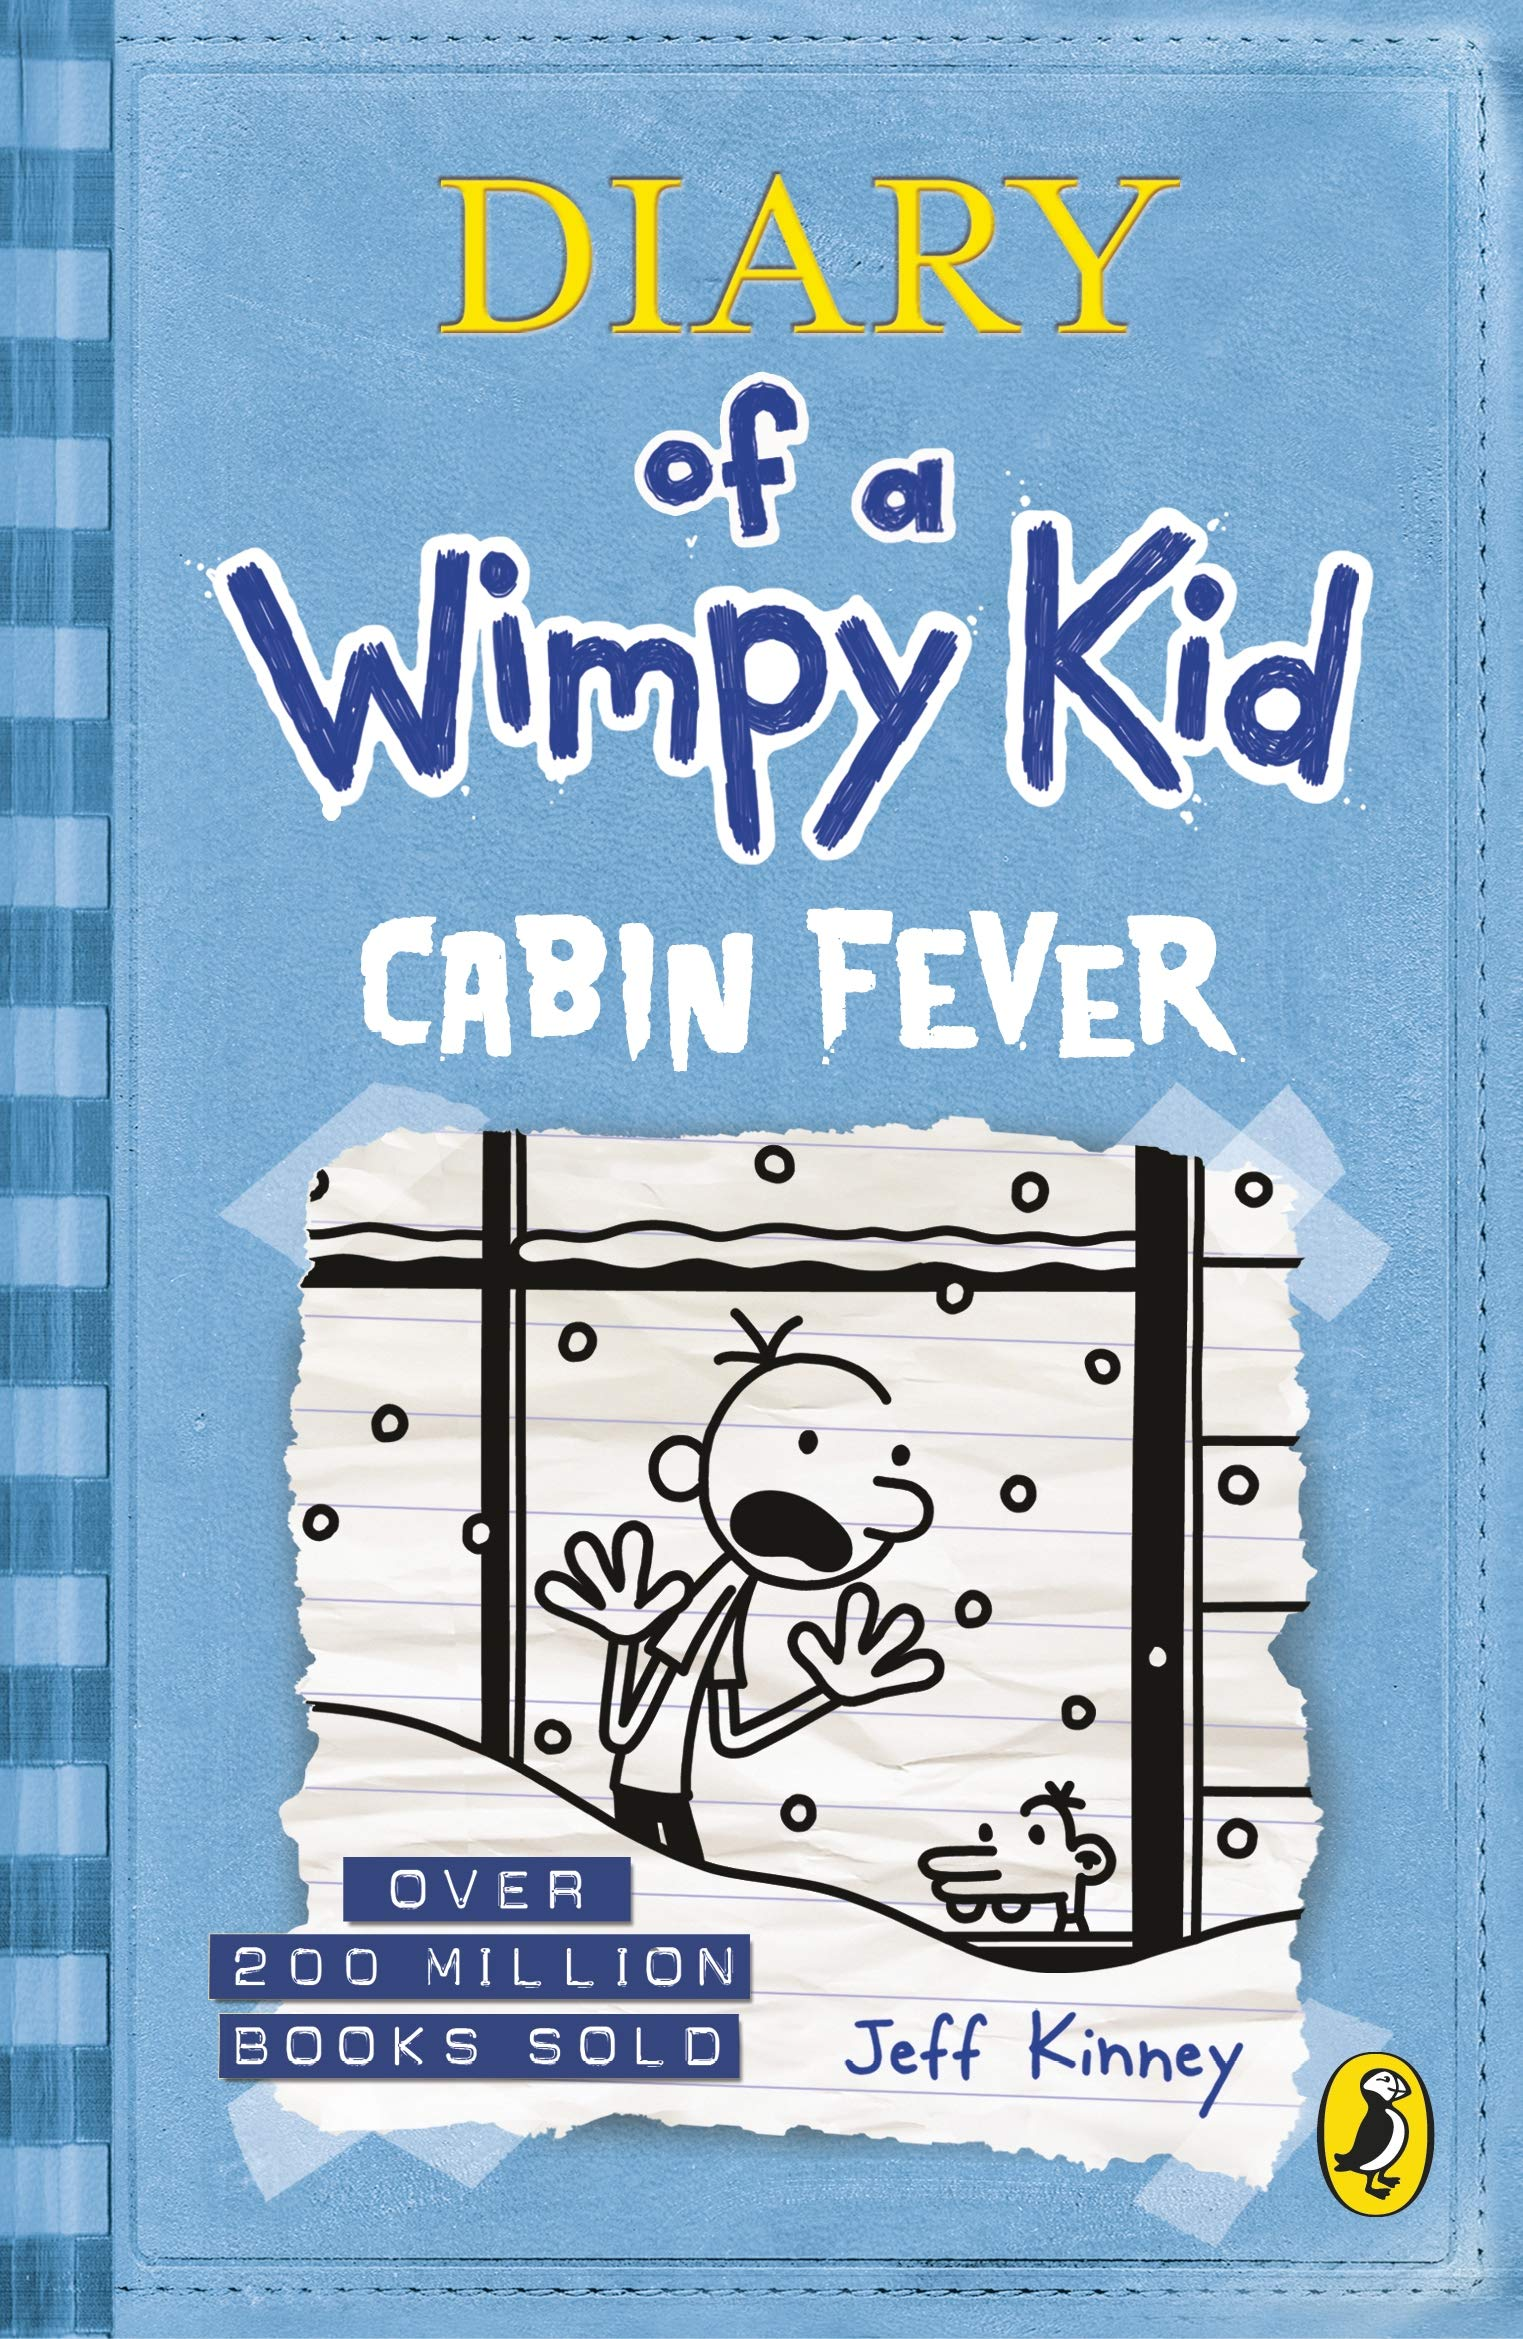 Cabin Fever Diary Of A Wimpy Kid Book 6 Jeff Kinney 8601300120010 Amazon Com Books